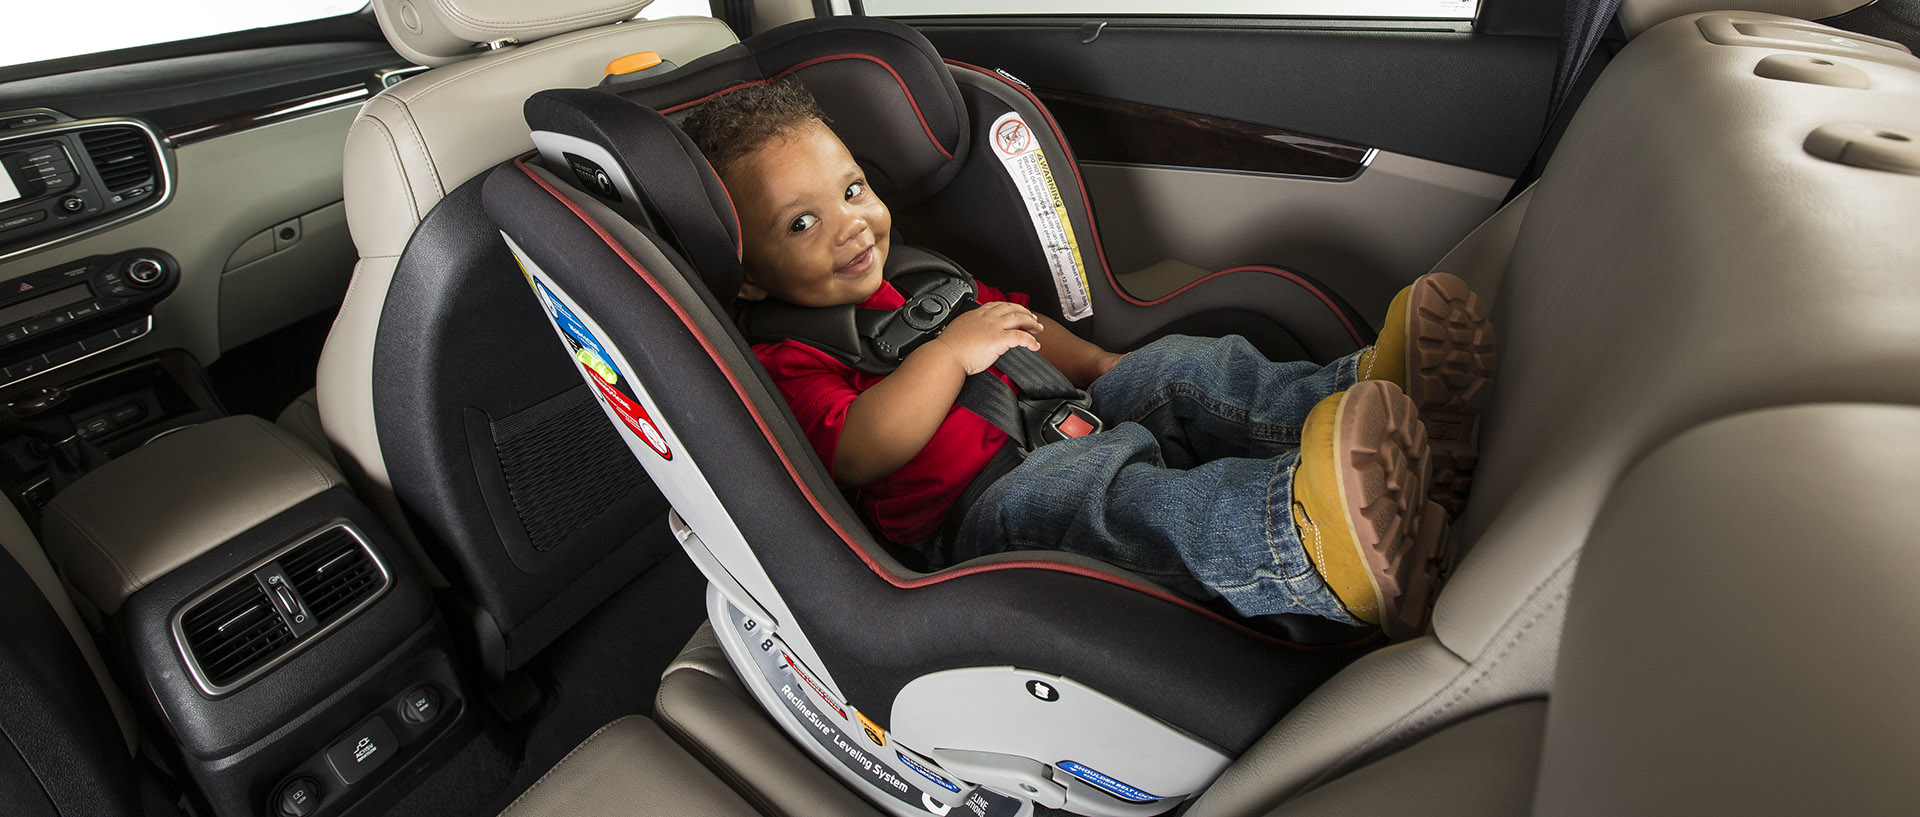 Car Seats Save Young Lives - Fort Lauderdale Accident Attorney